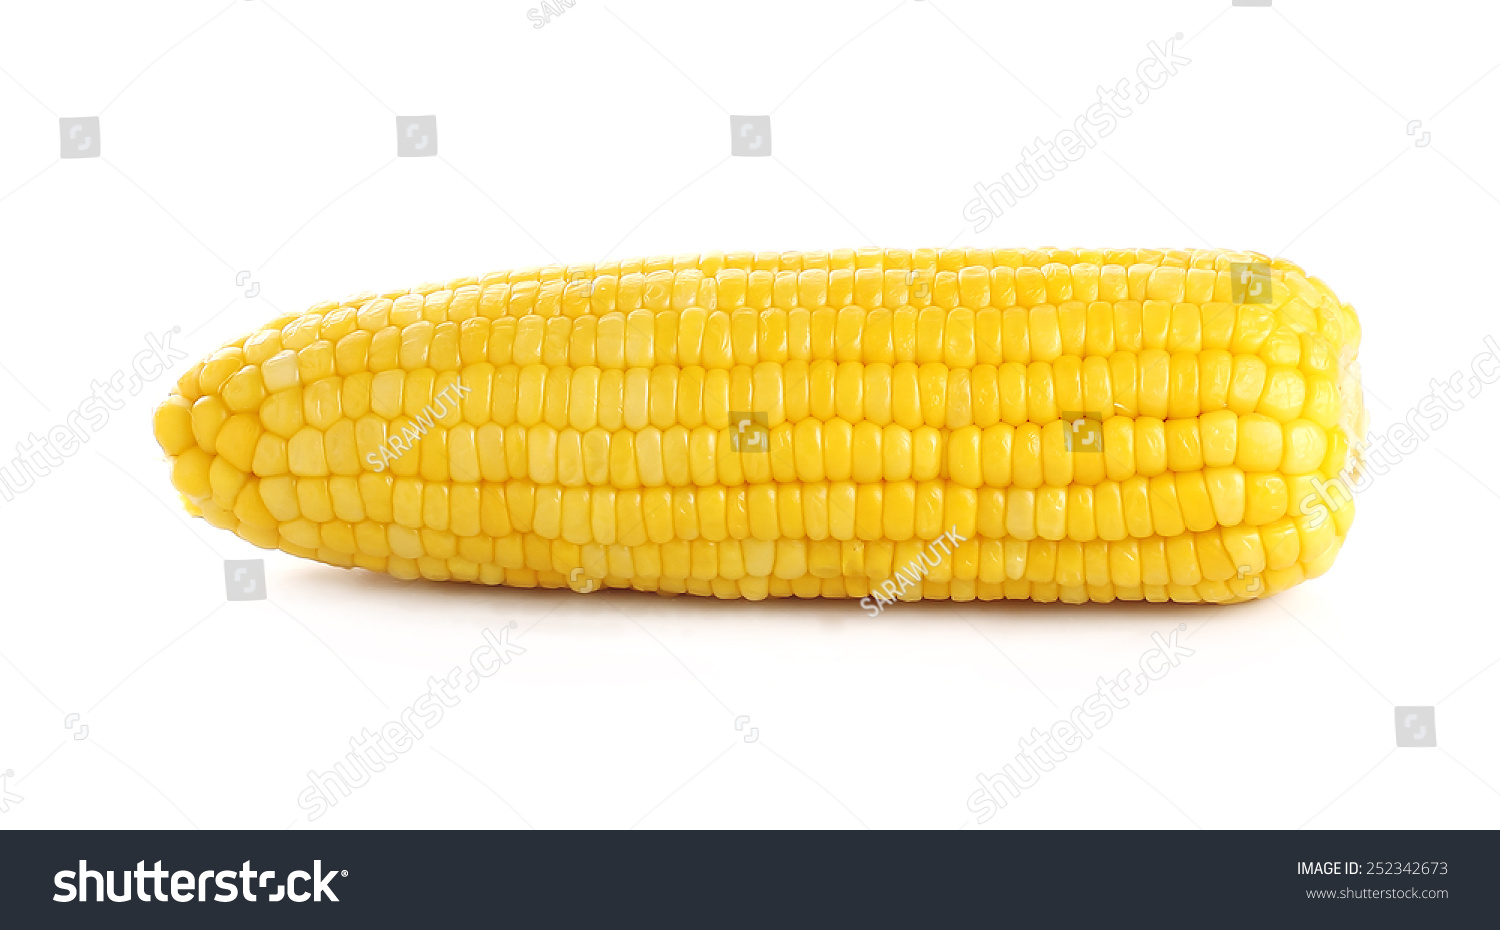 Ears Of Sweet Corn Isolated On White Background Stock Photo 252342673 : Shutterstock